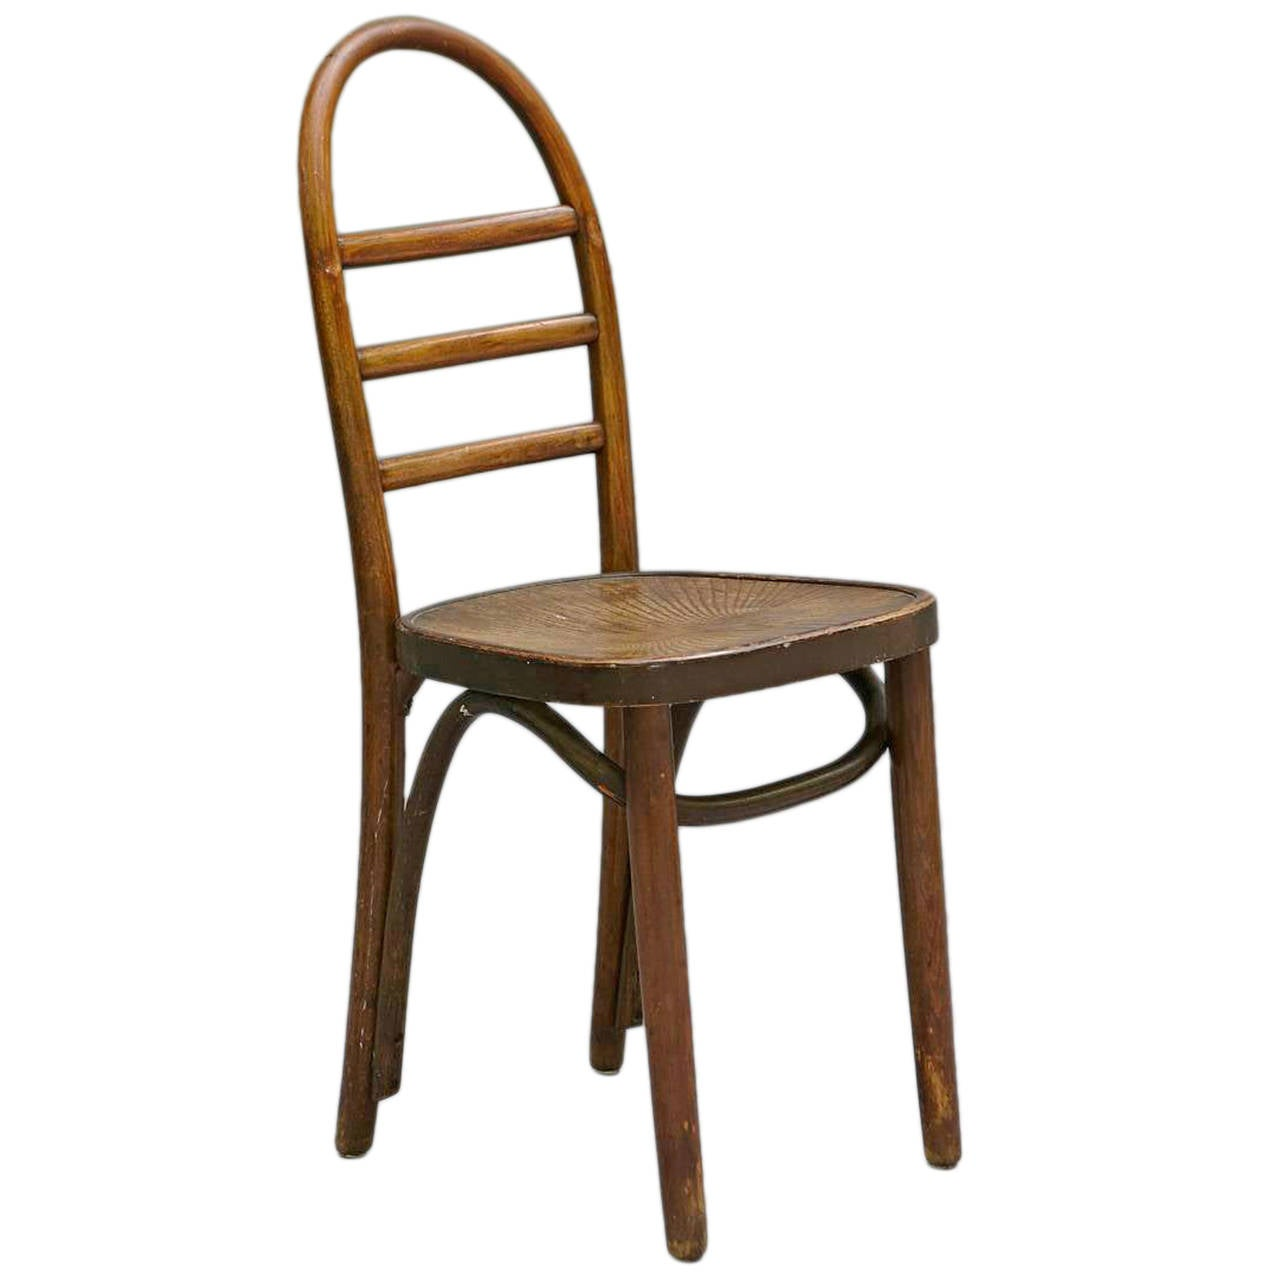 Bent Wood Chairs Thonet Bentwood Ladder Back Chair At 1stdibs